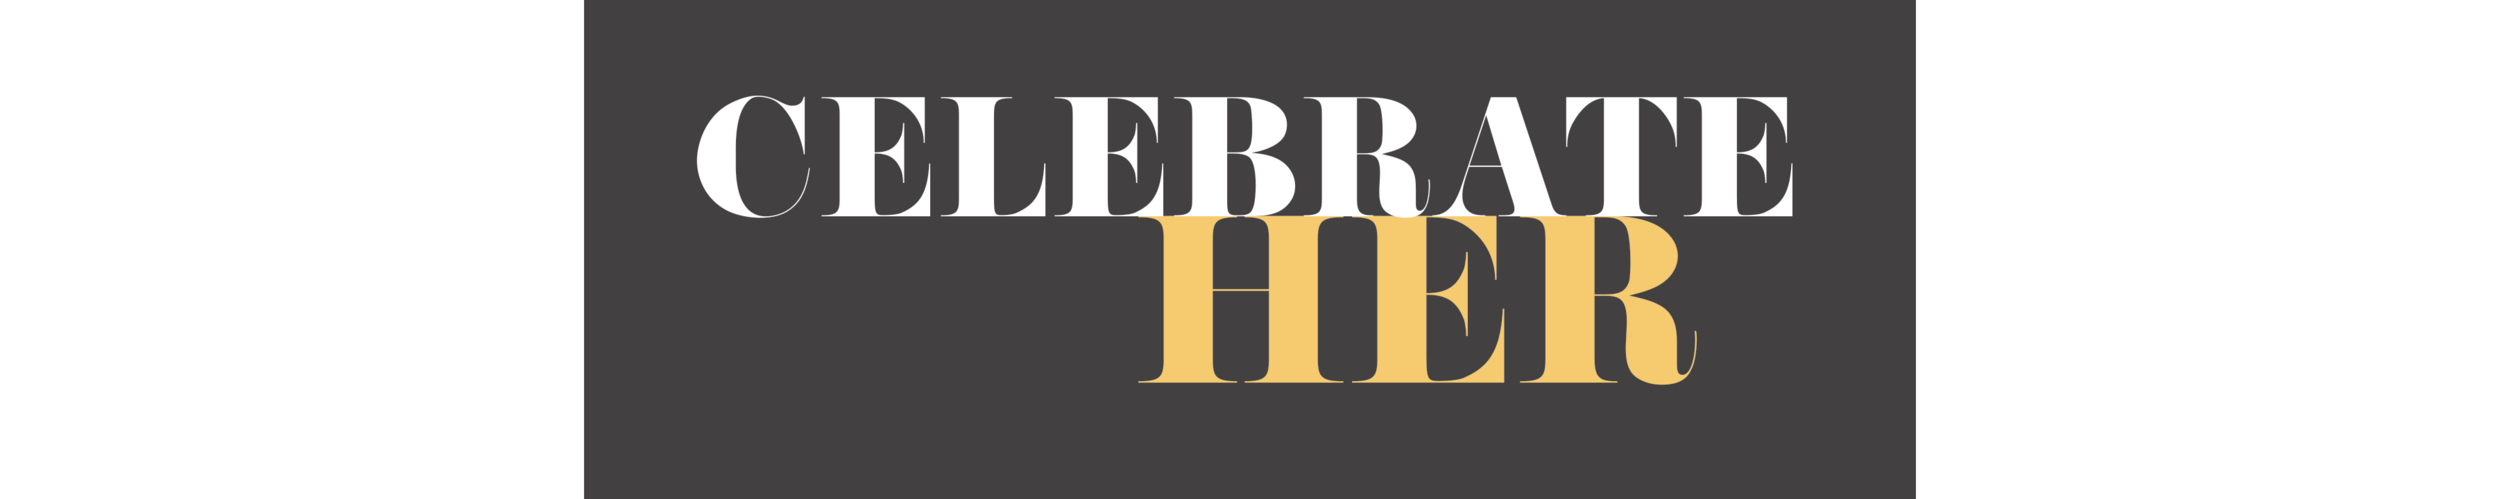 CelebrateHer2018-logo1-bg Bracketed2.png